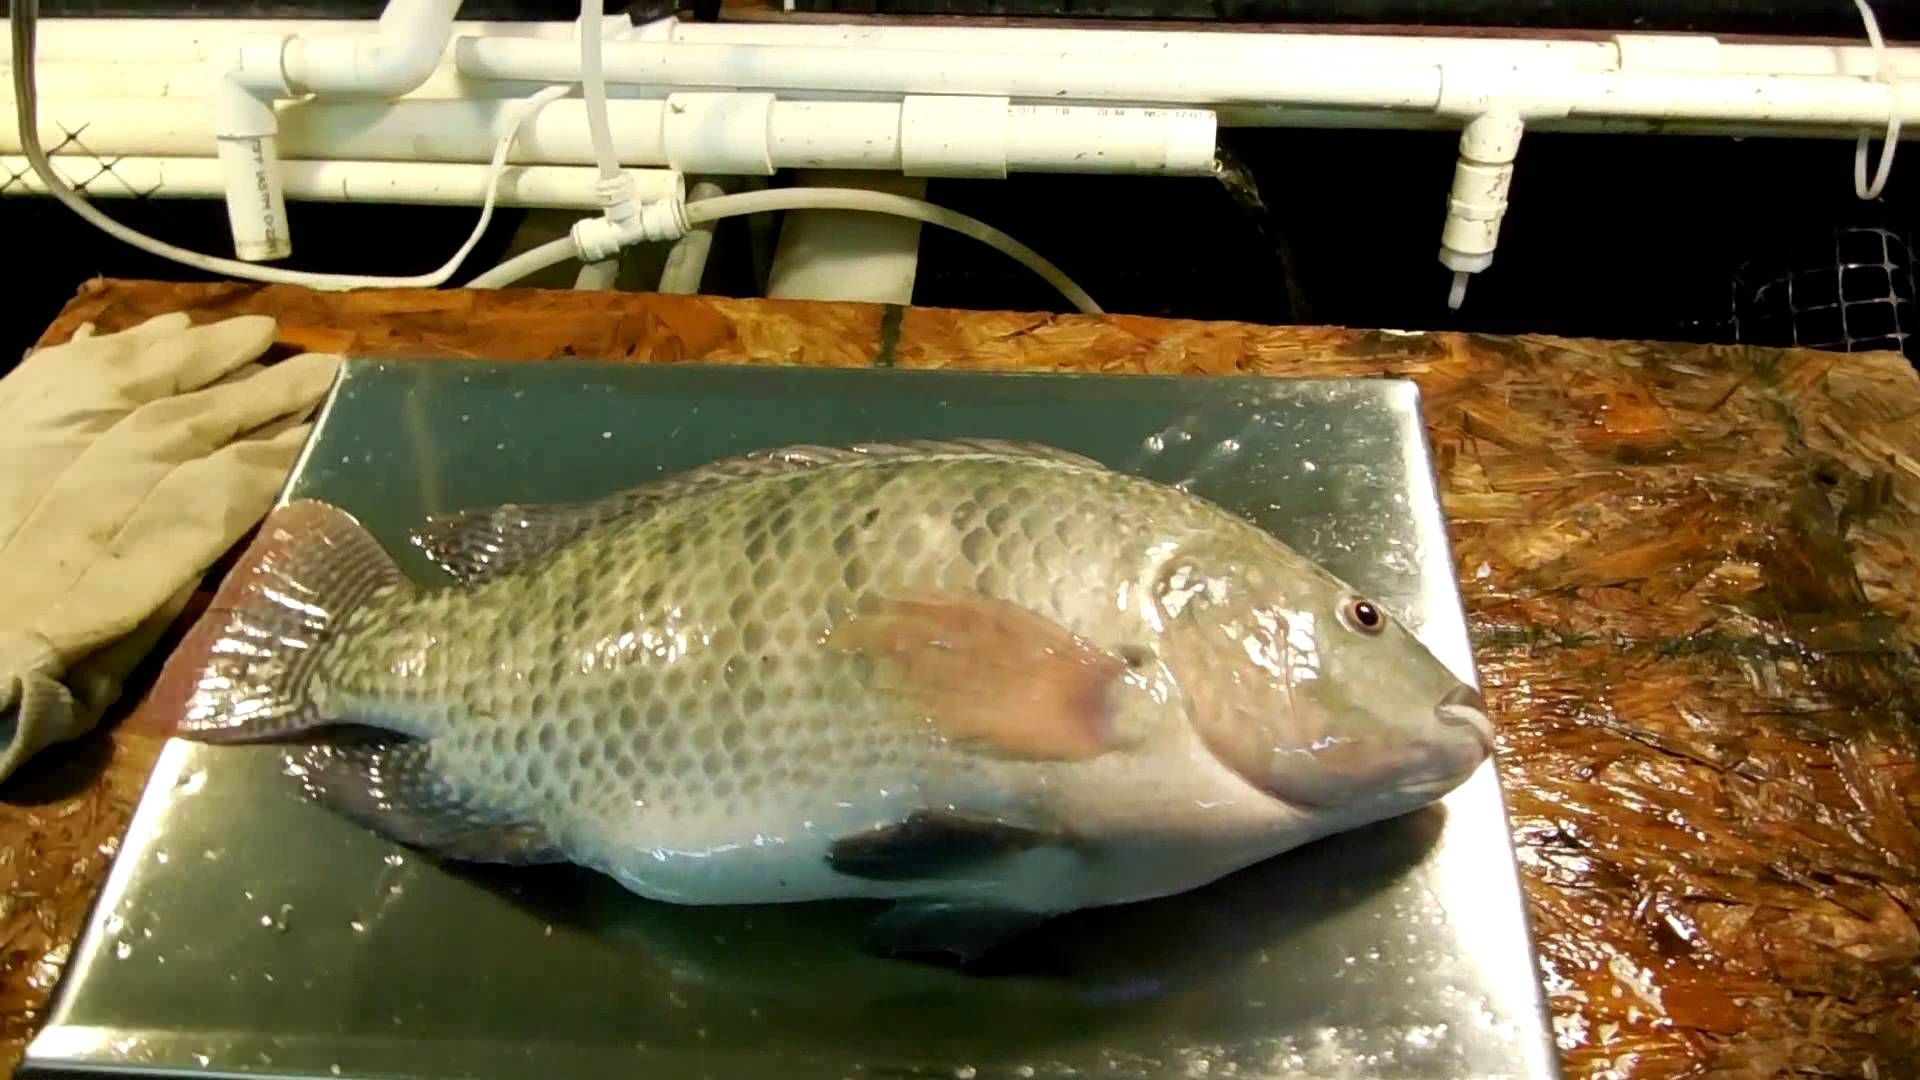 home tilapia production with diy small scale aquaculture system